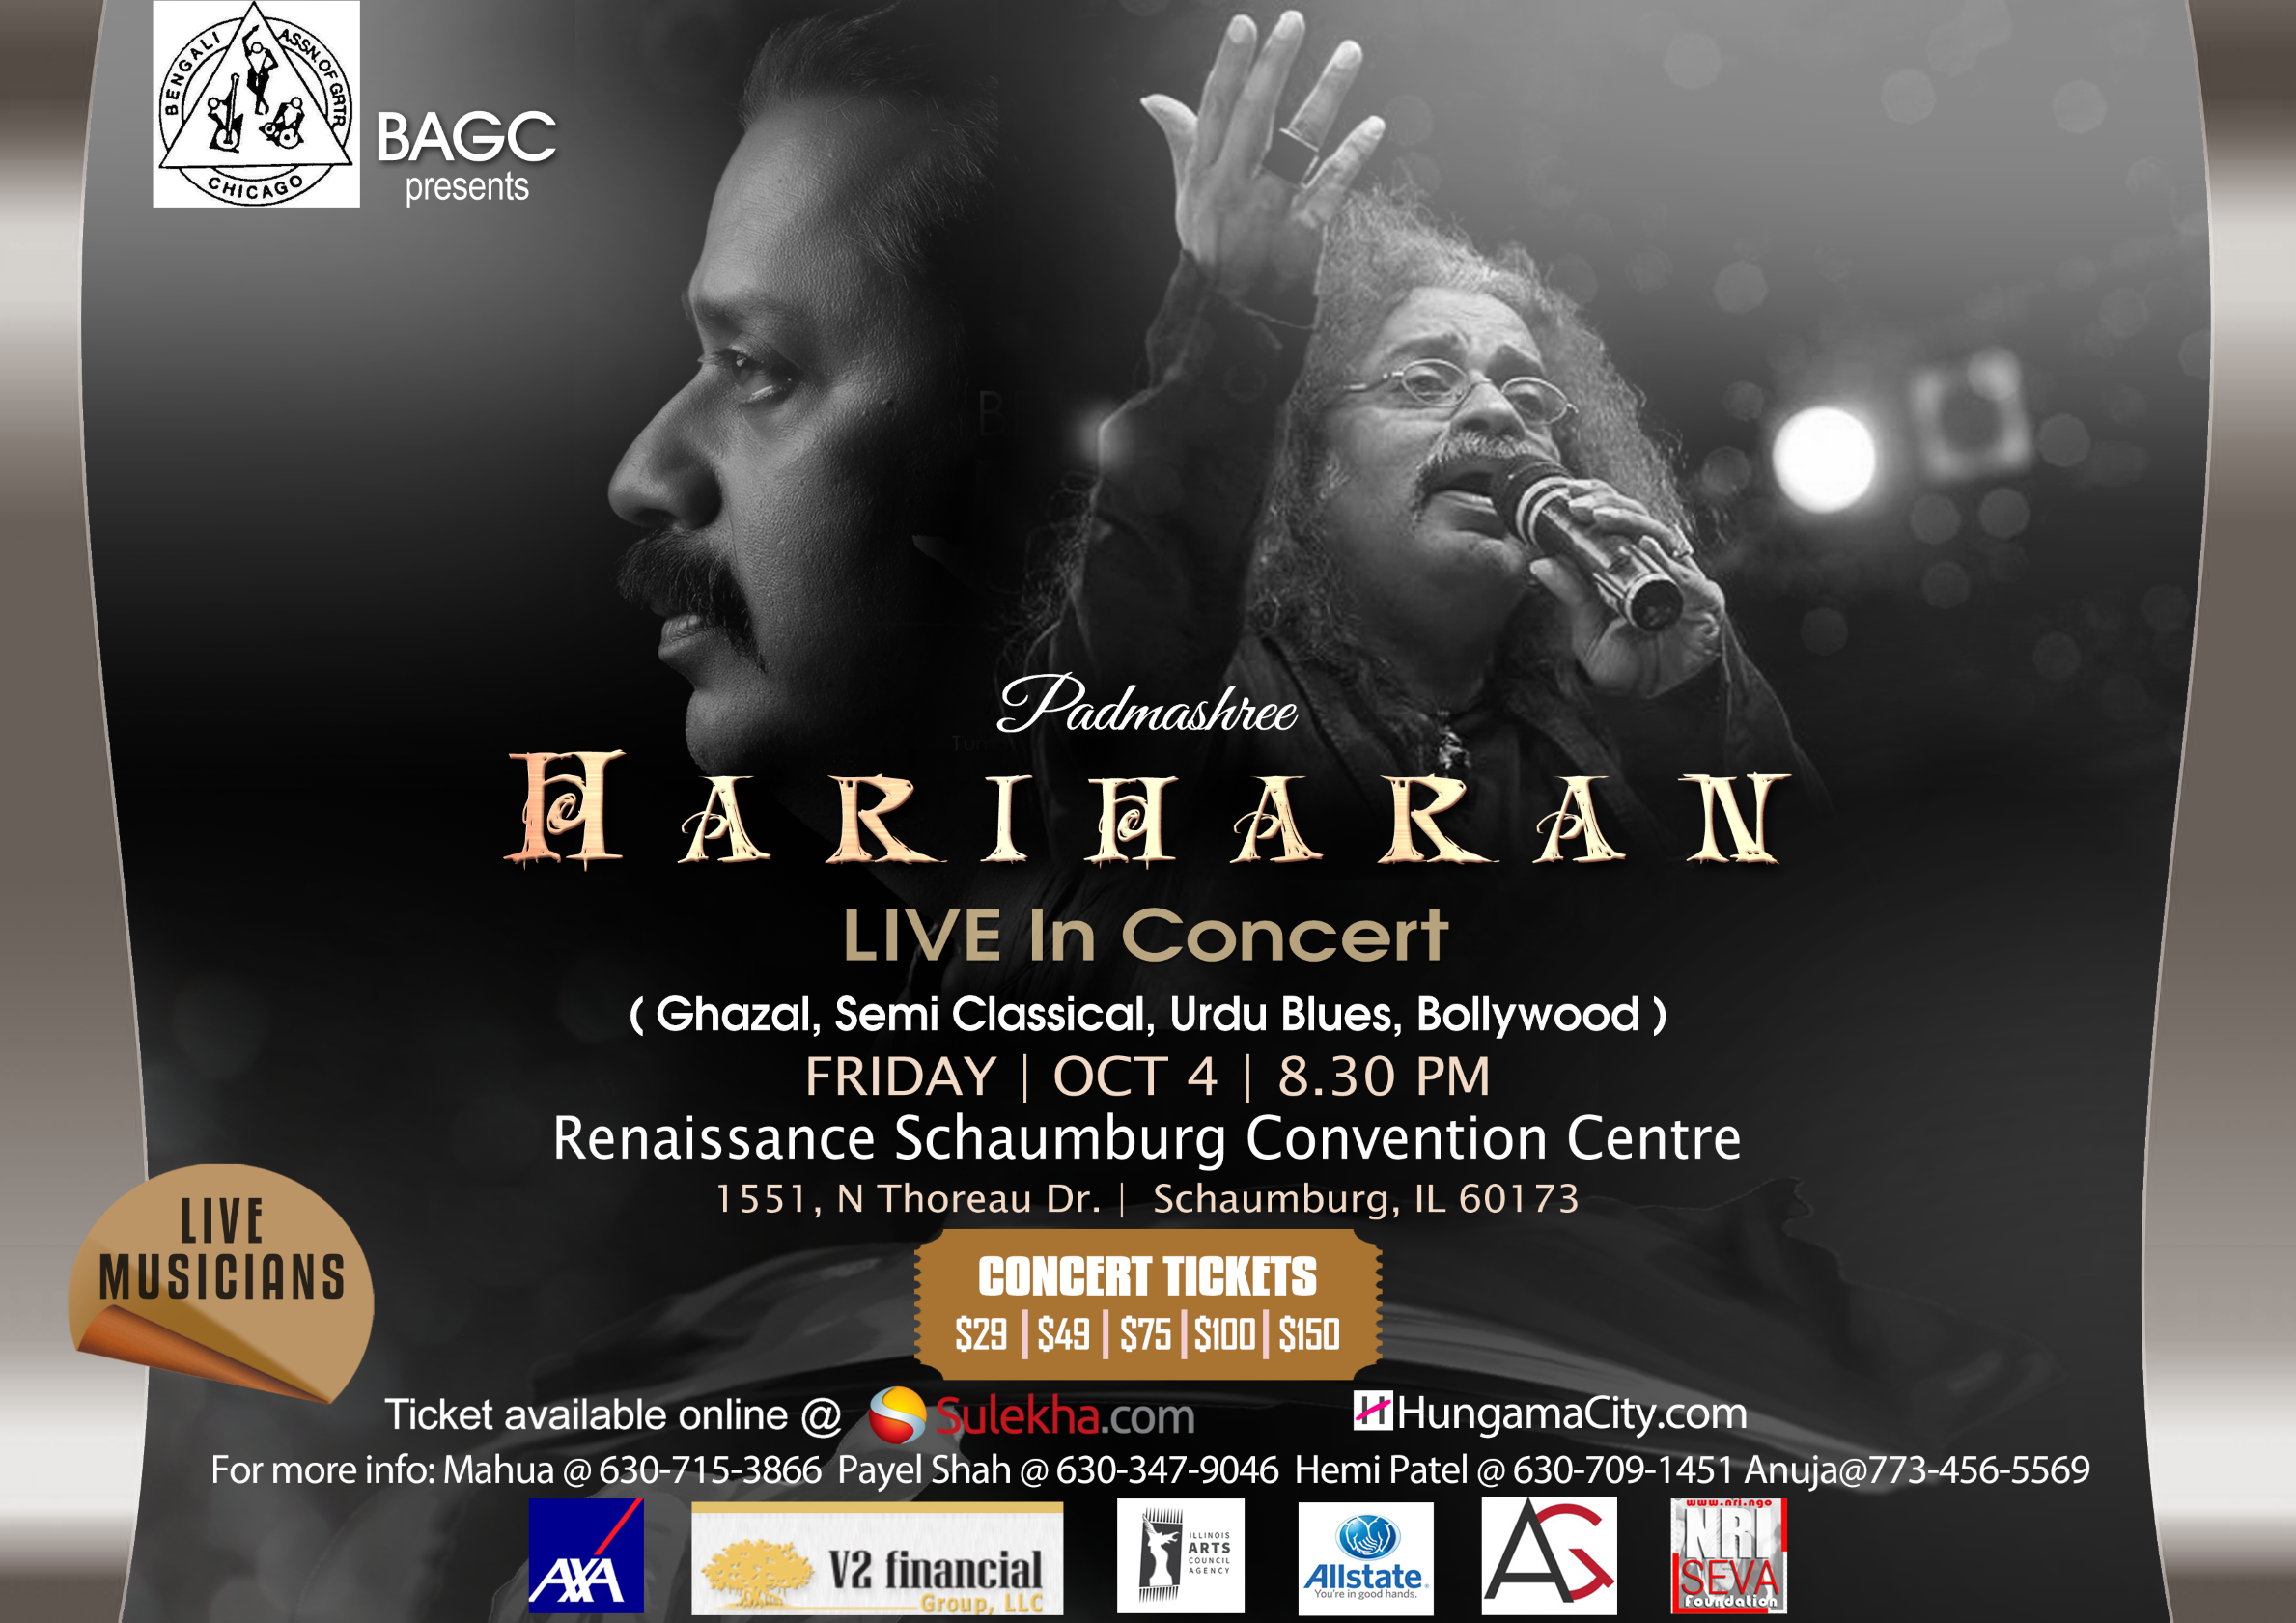 Hariharan 4th Oct Live in Concert in Chicago